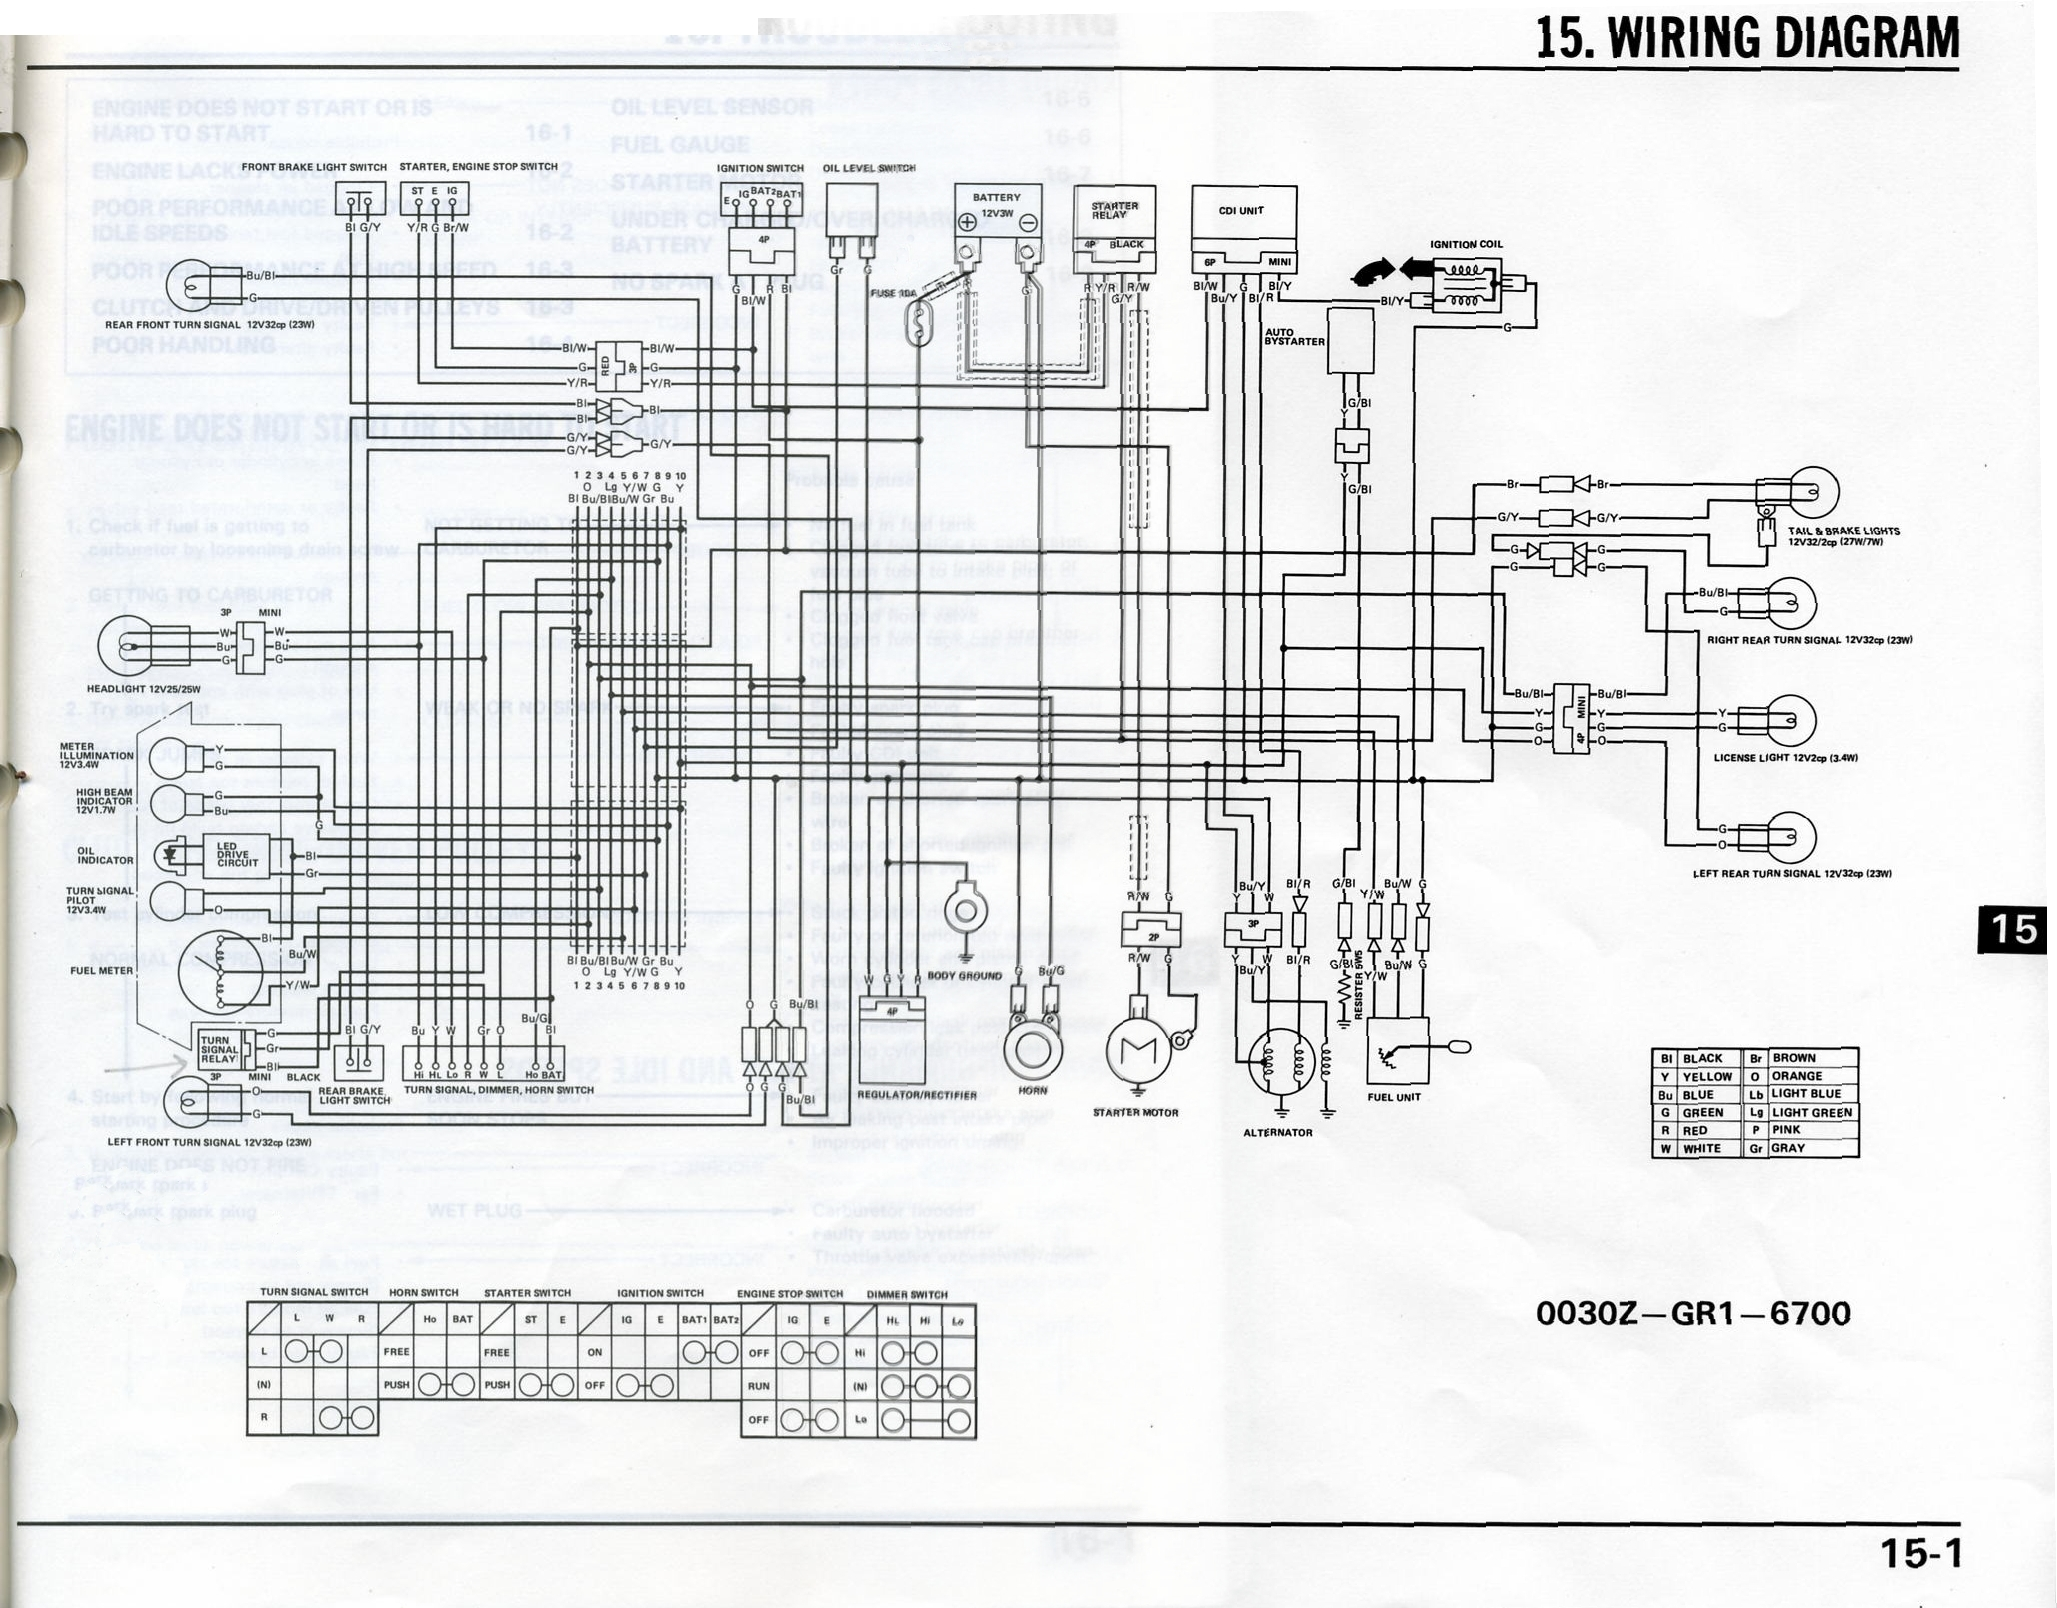 1986 honda 250 fourtrax wiring diagram 1986 image honda elite wiring diagram honda wiring diagrams on 1986 honda 250 fourtrax wiring diagram